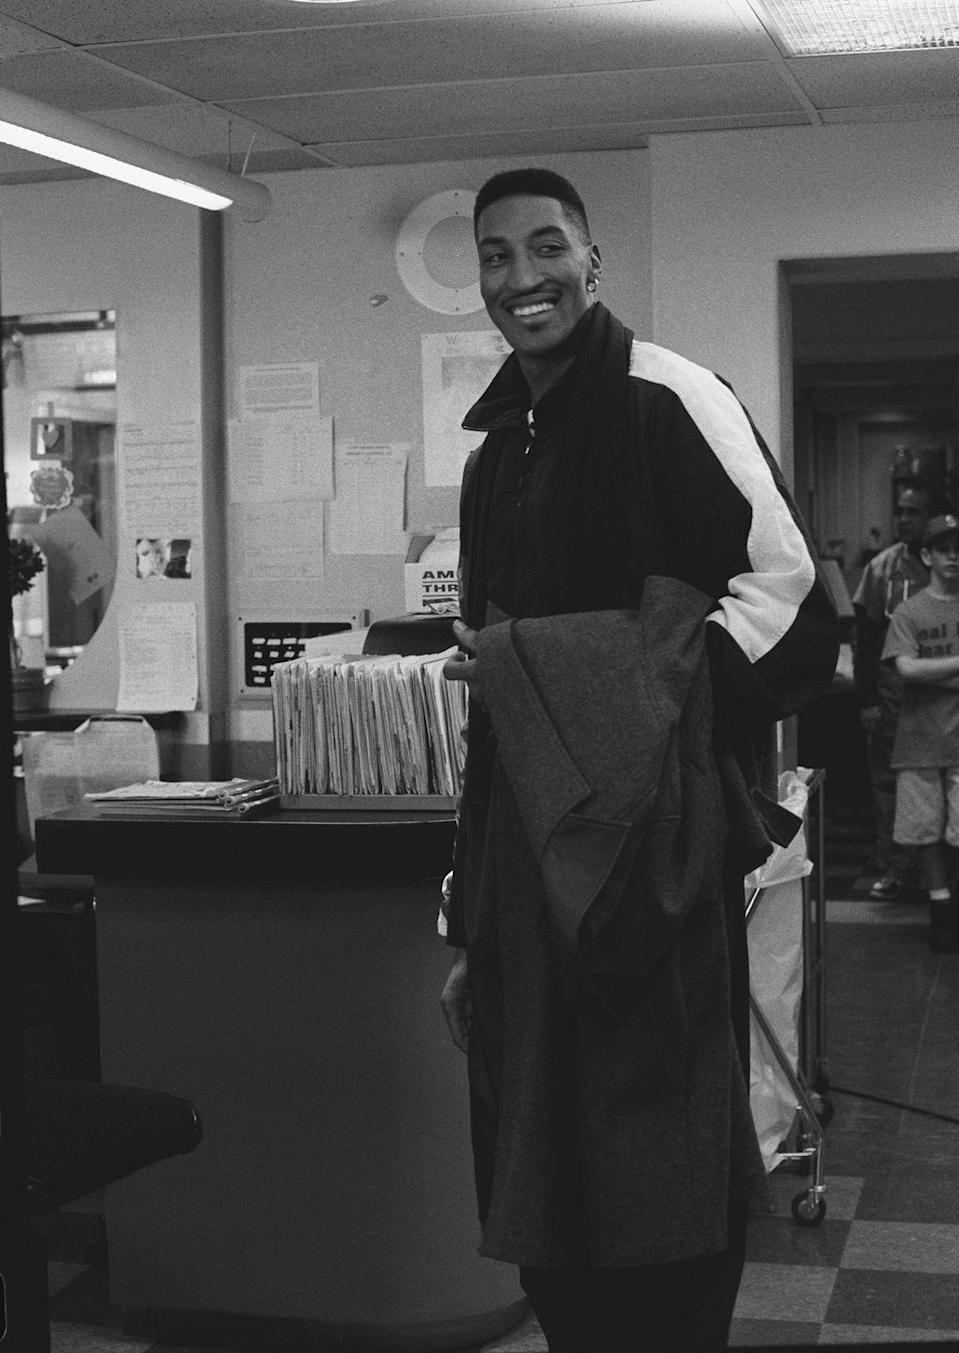 """<p>Chicago Bulls player Scottie Pippen guest starred on the show as himself in 1996. The episode """"Baby Shower"""" was a source of hometown pride, as the fictional hospital is based in Chicago. </p>"""